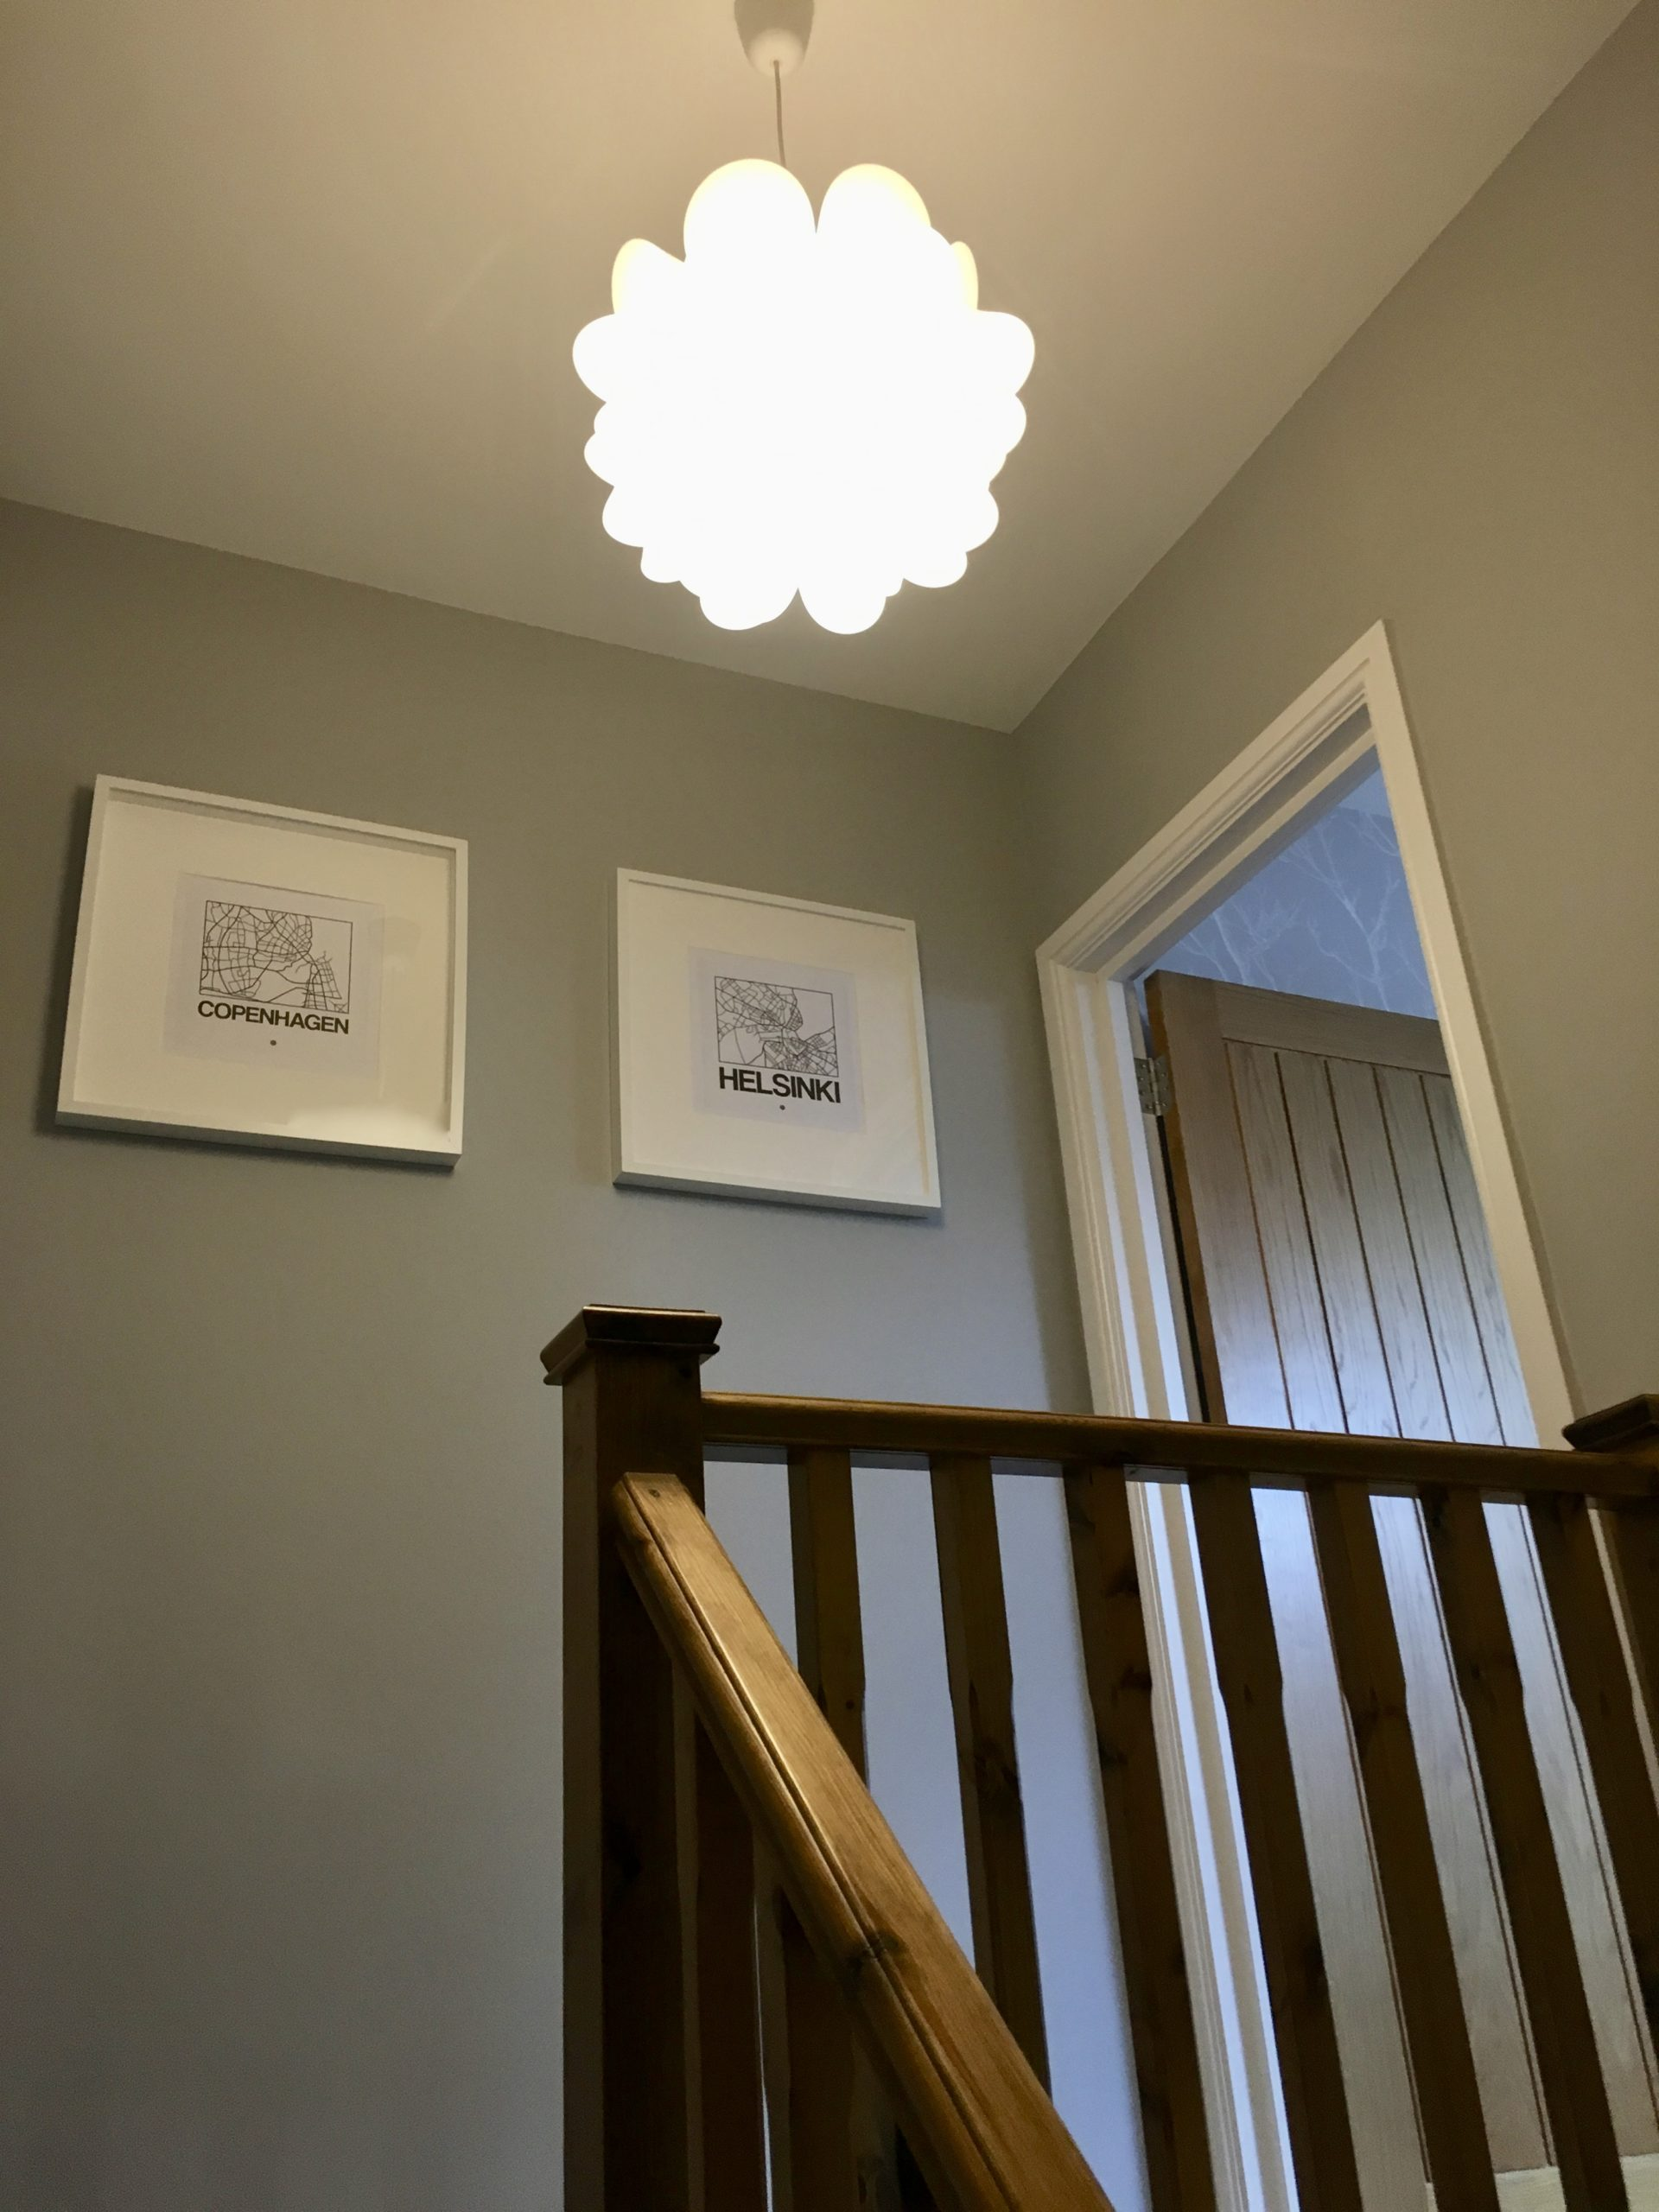 Scandinavian city map prints in show home designed by Amelia Wilson Interiors Ltd